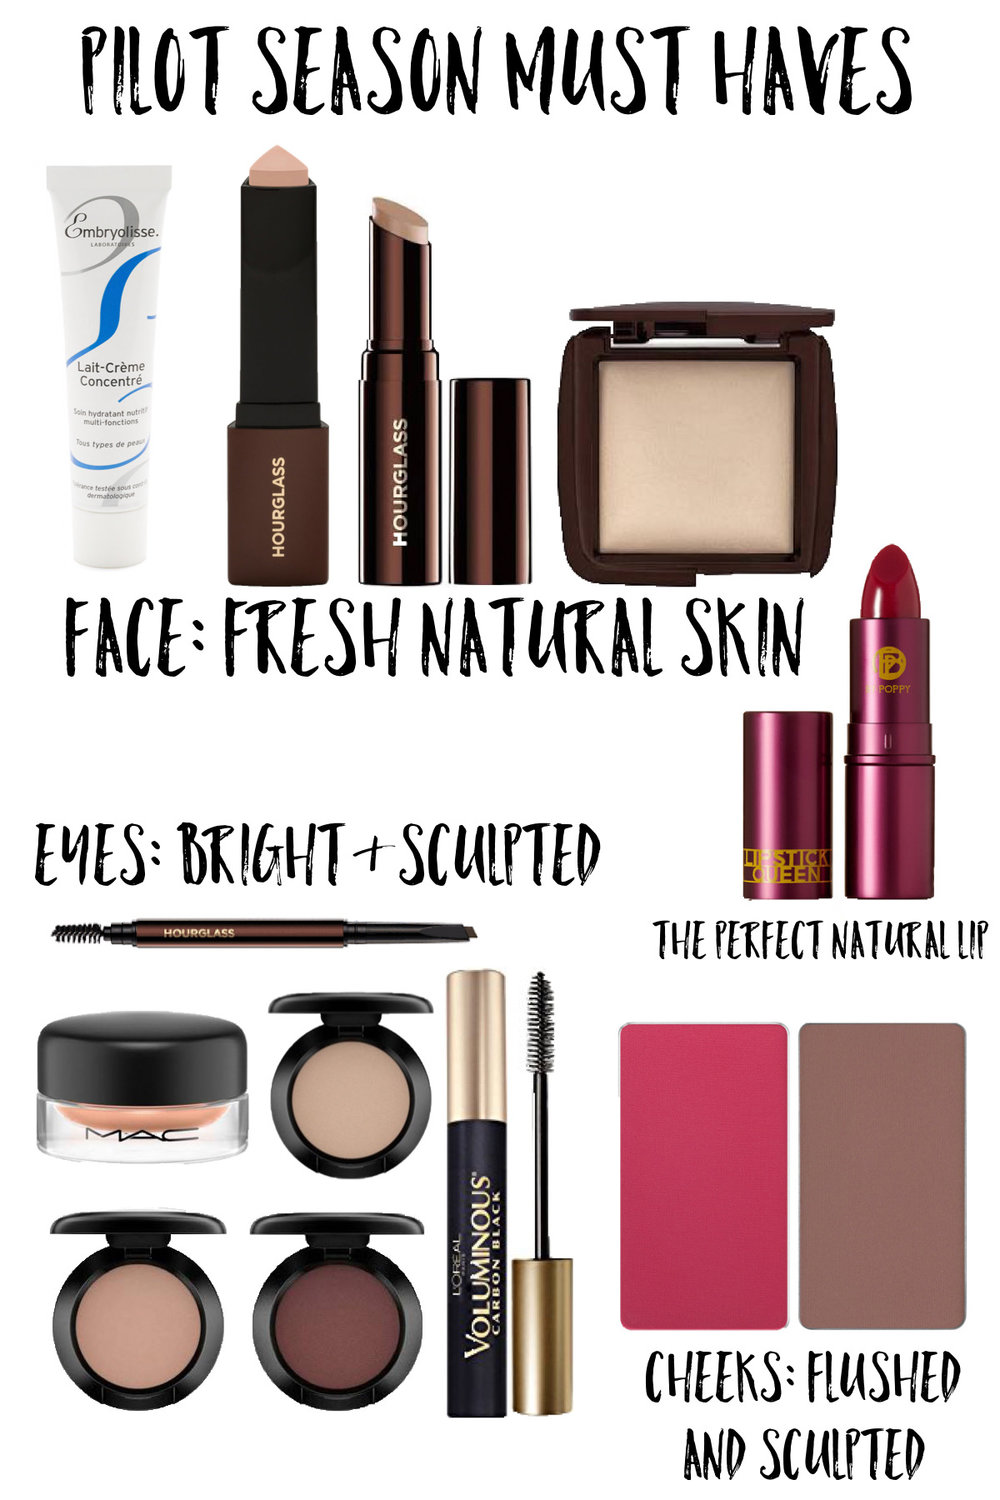 My Pilot Season must-haves for a natural, sculpted face!